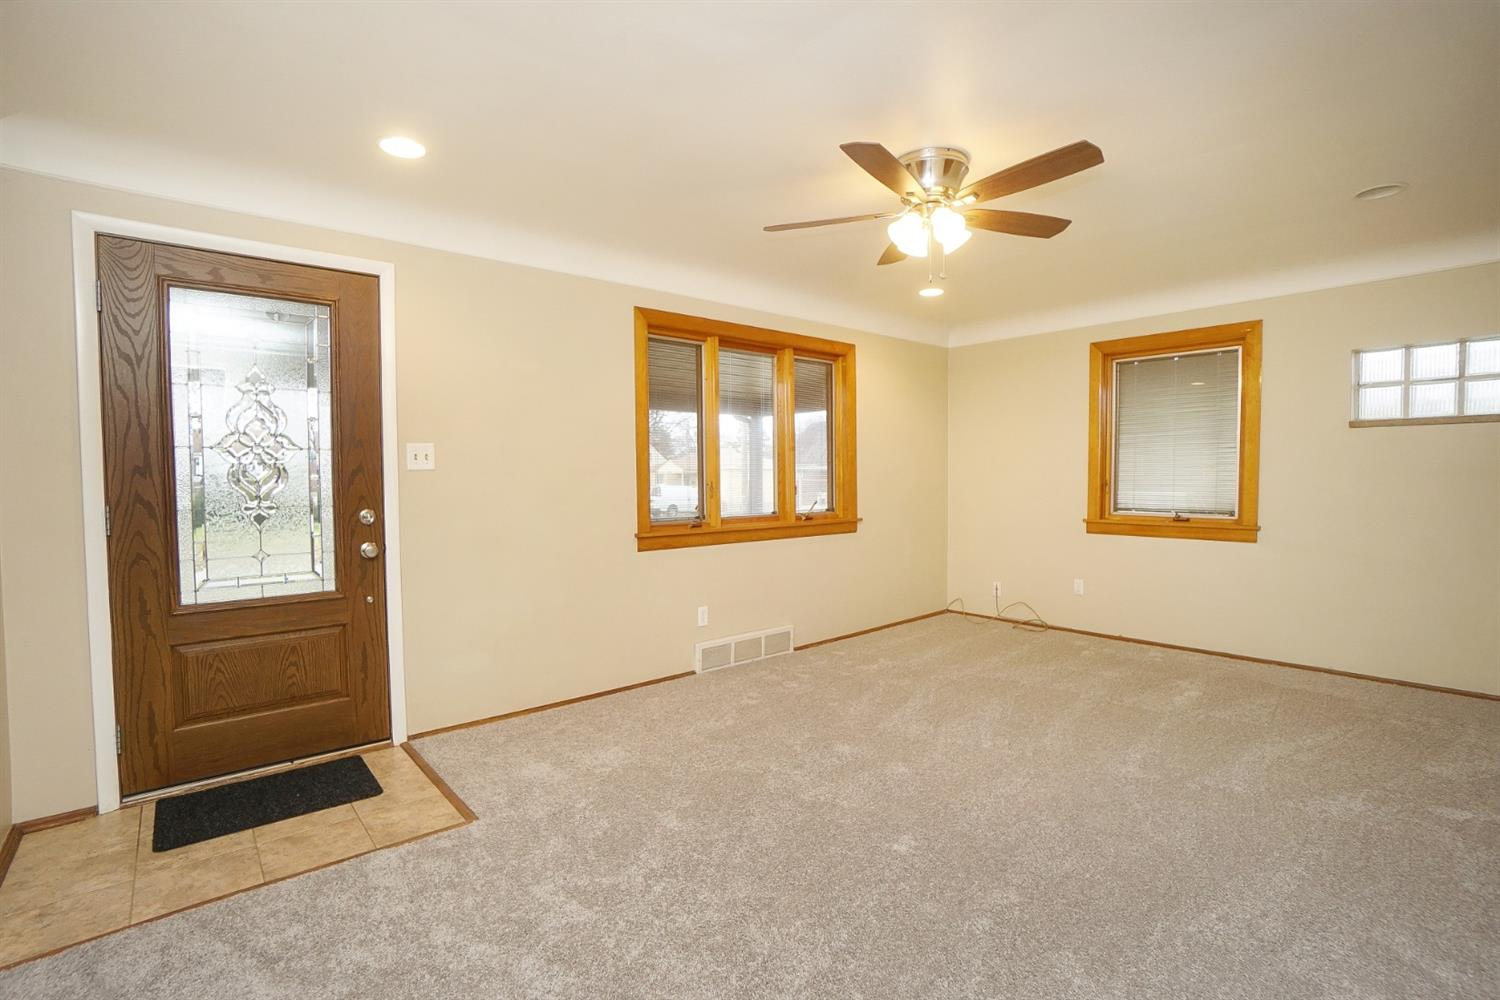 Photo 3 for 8301 Coghill Ln Groesbeck, OH 45239